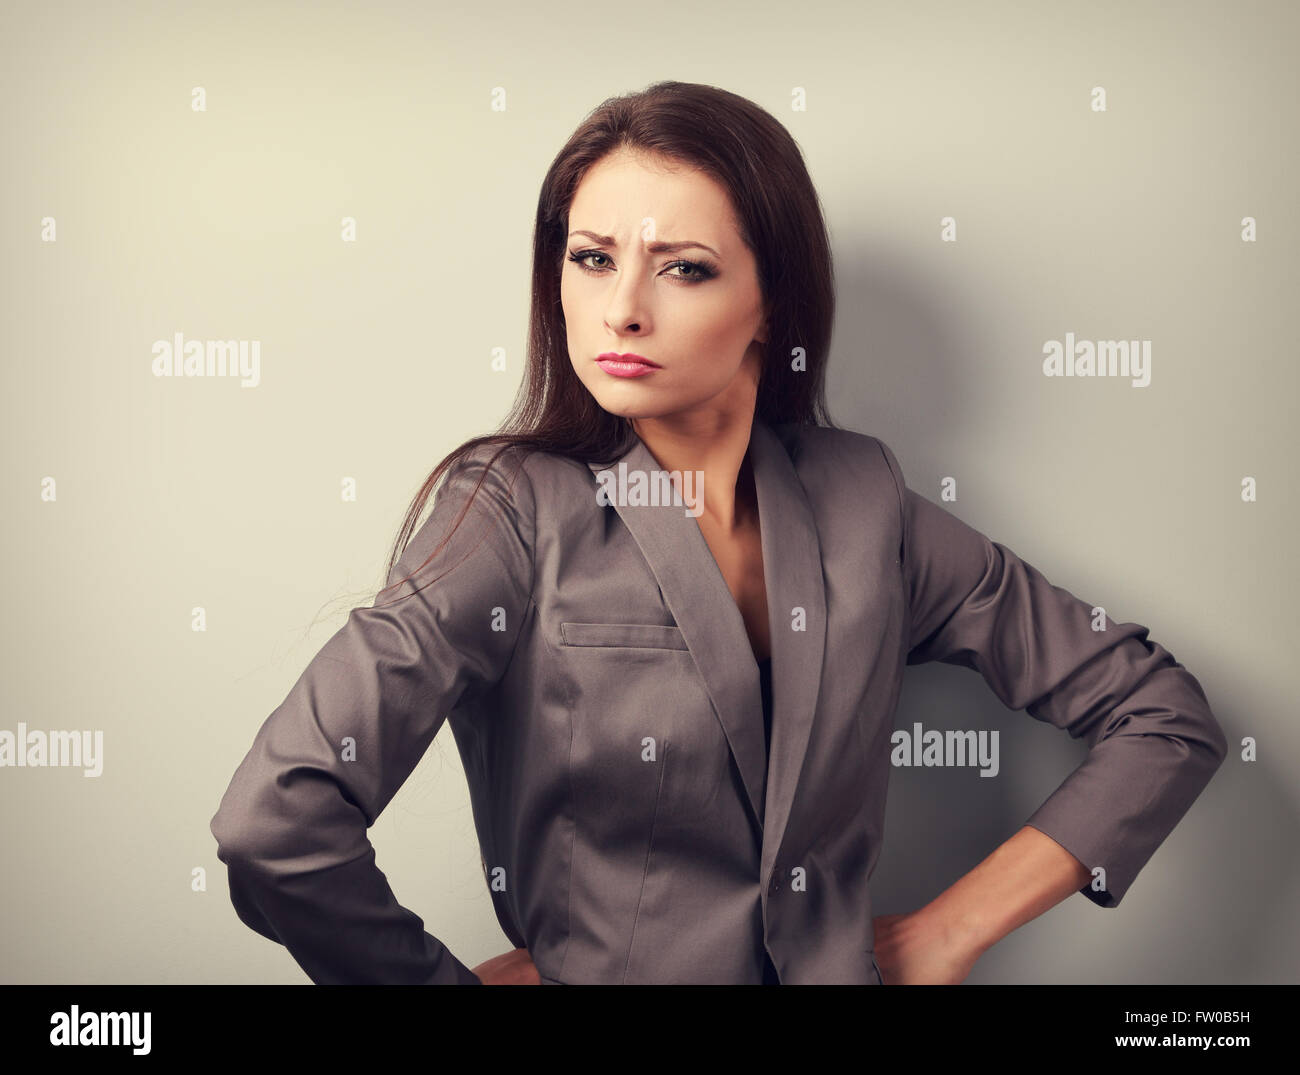 Stressed angry business woman in suit looking. Toned emotional portrait - Stock Image